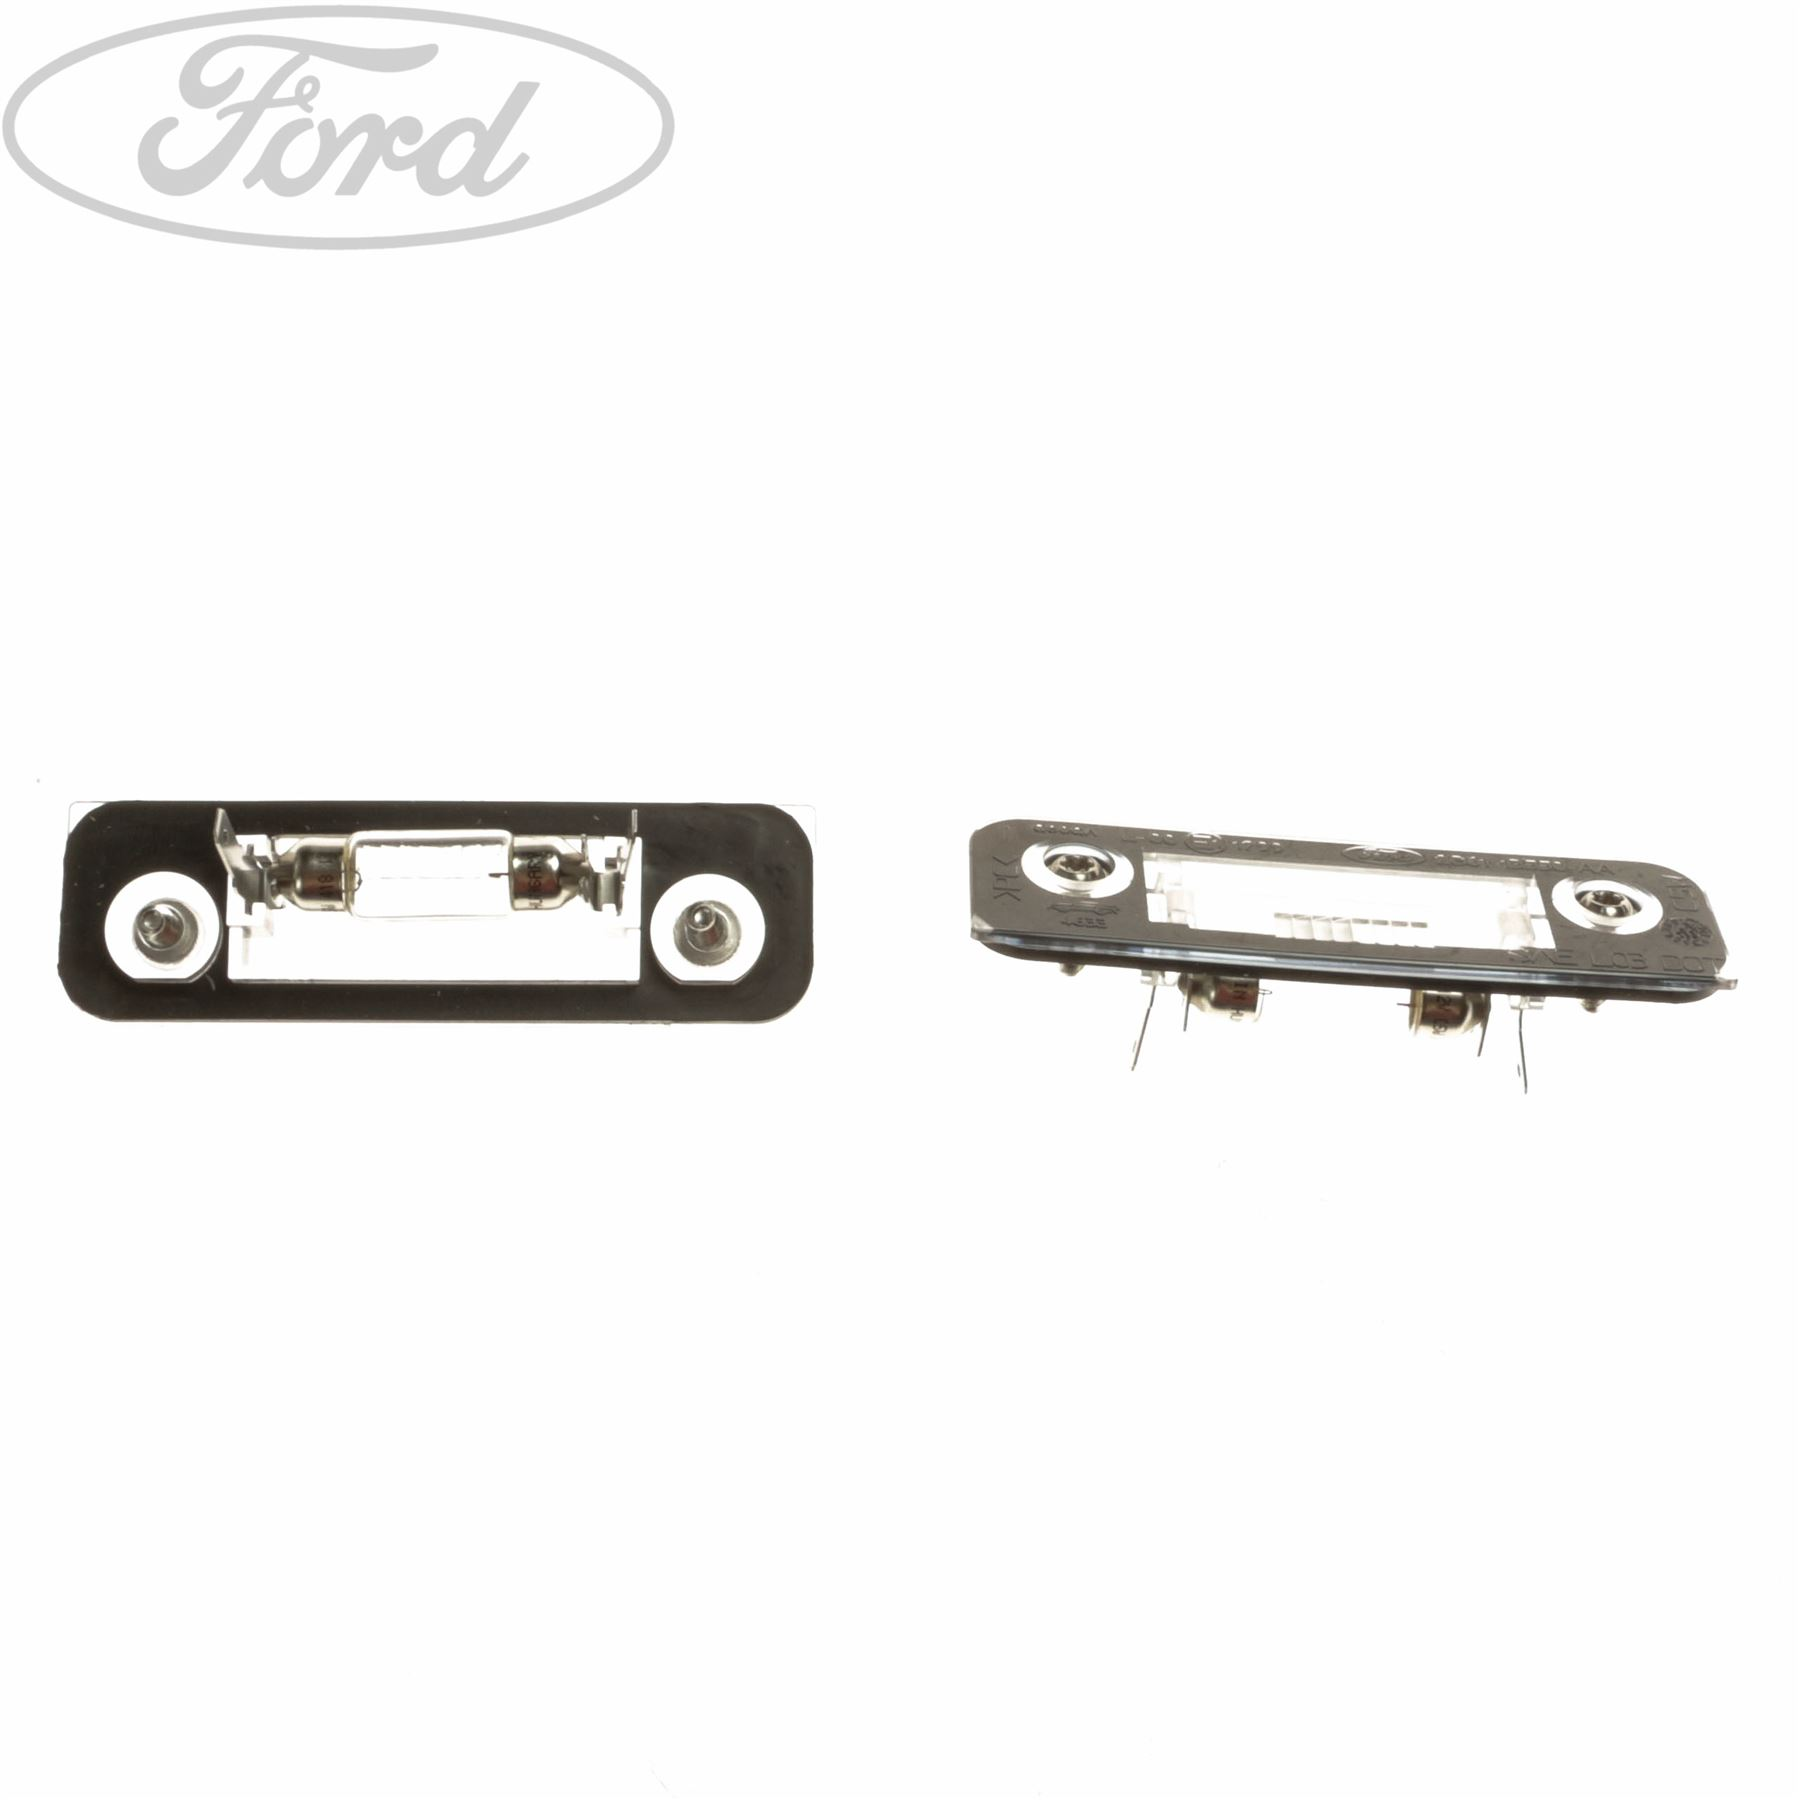 hight resolution of details about genuine ford mondeo mk1 mk2 fiesta mk6 fusion number plate light lamp 1332916